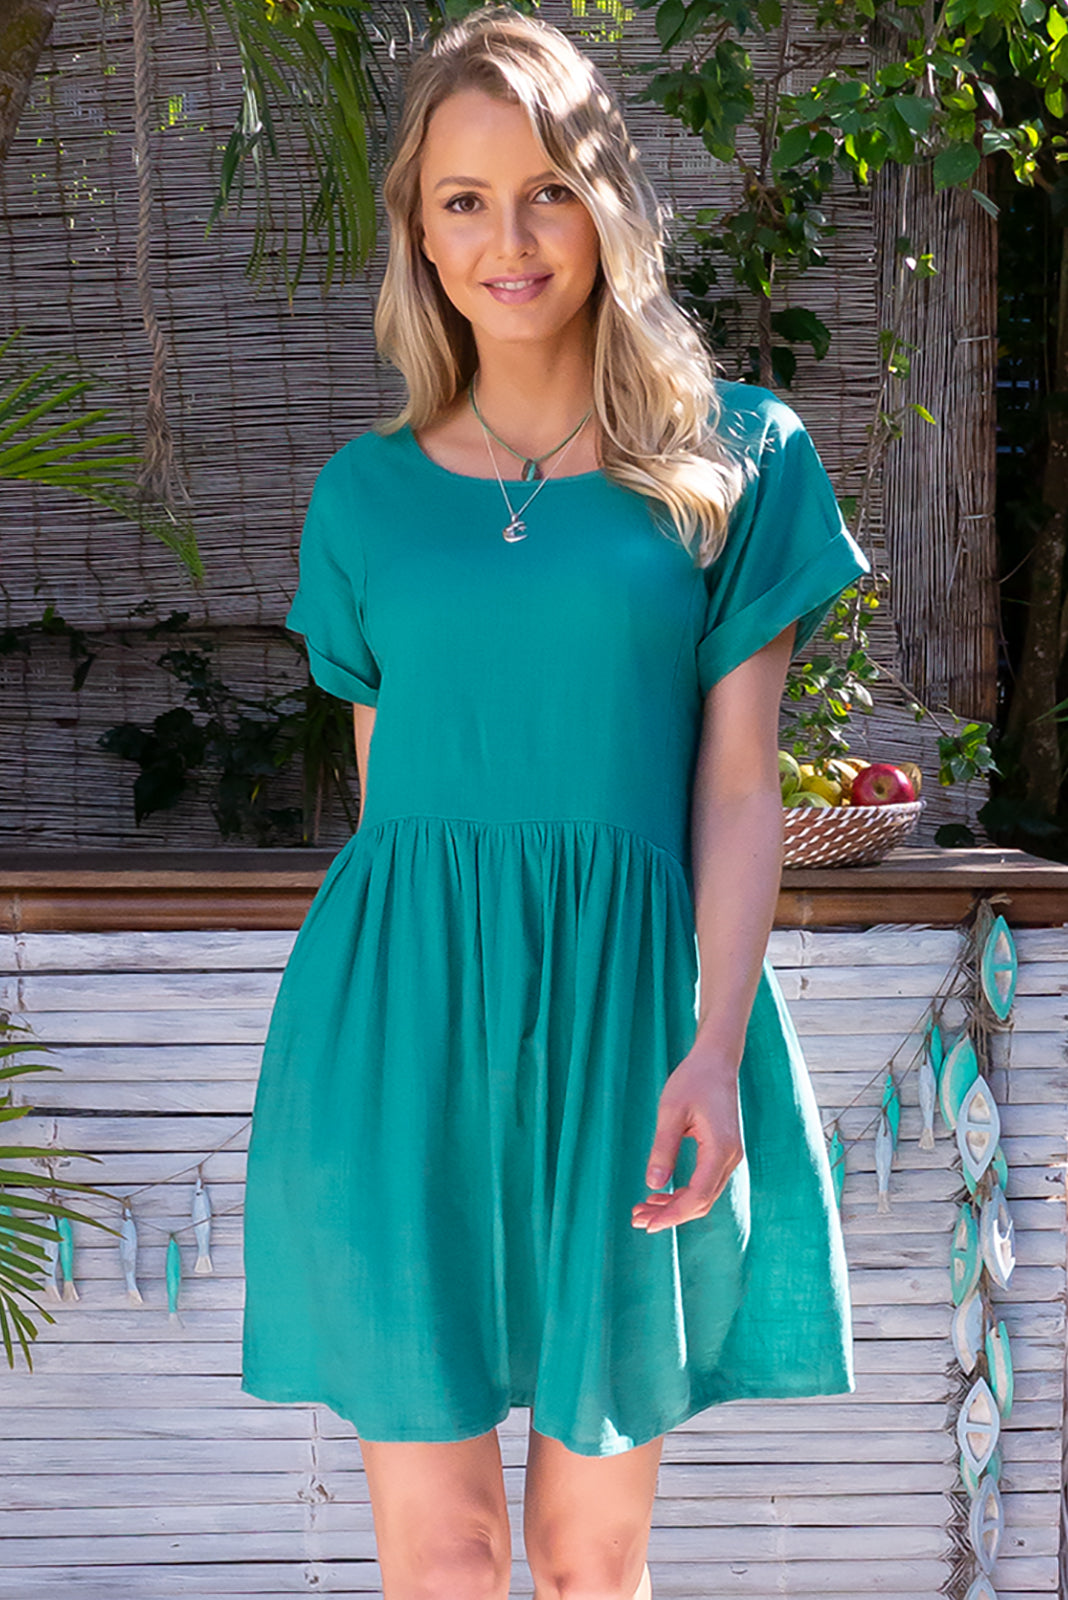 The Blue Moon Laguna Teal Dress is a loose fit, easy to wear frock featuring cuffed sleeves, drop waist, buttons and tabs at waist, side pockets and 30% Linen/ 70% Viscose in teal green colour.